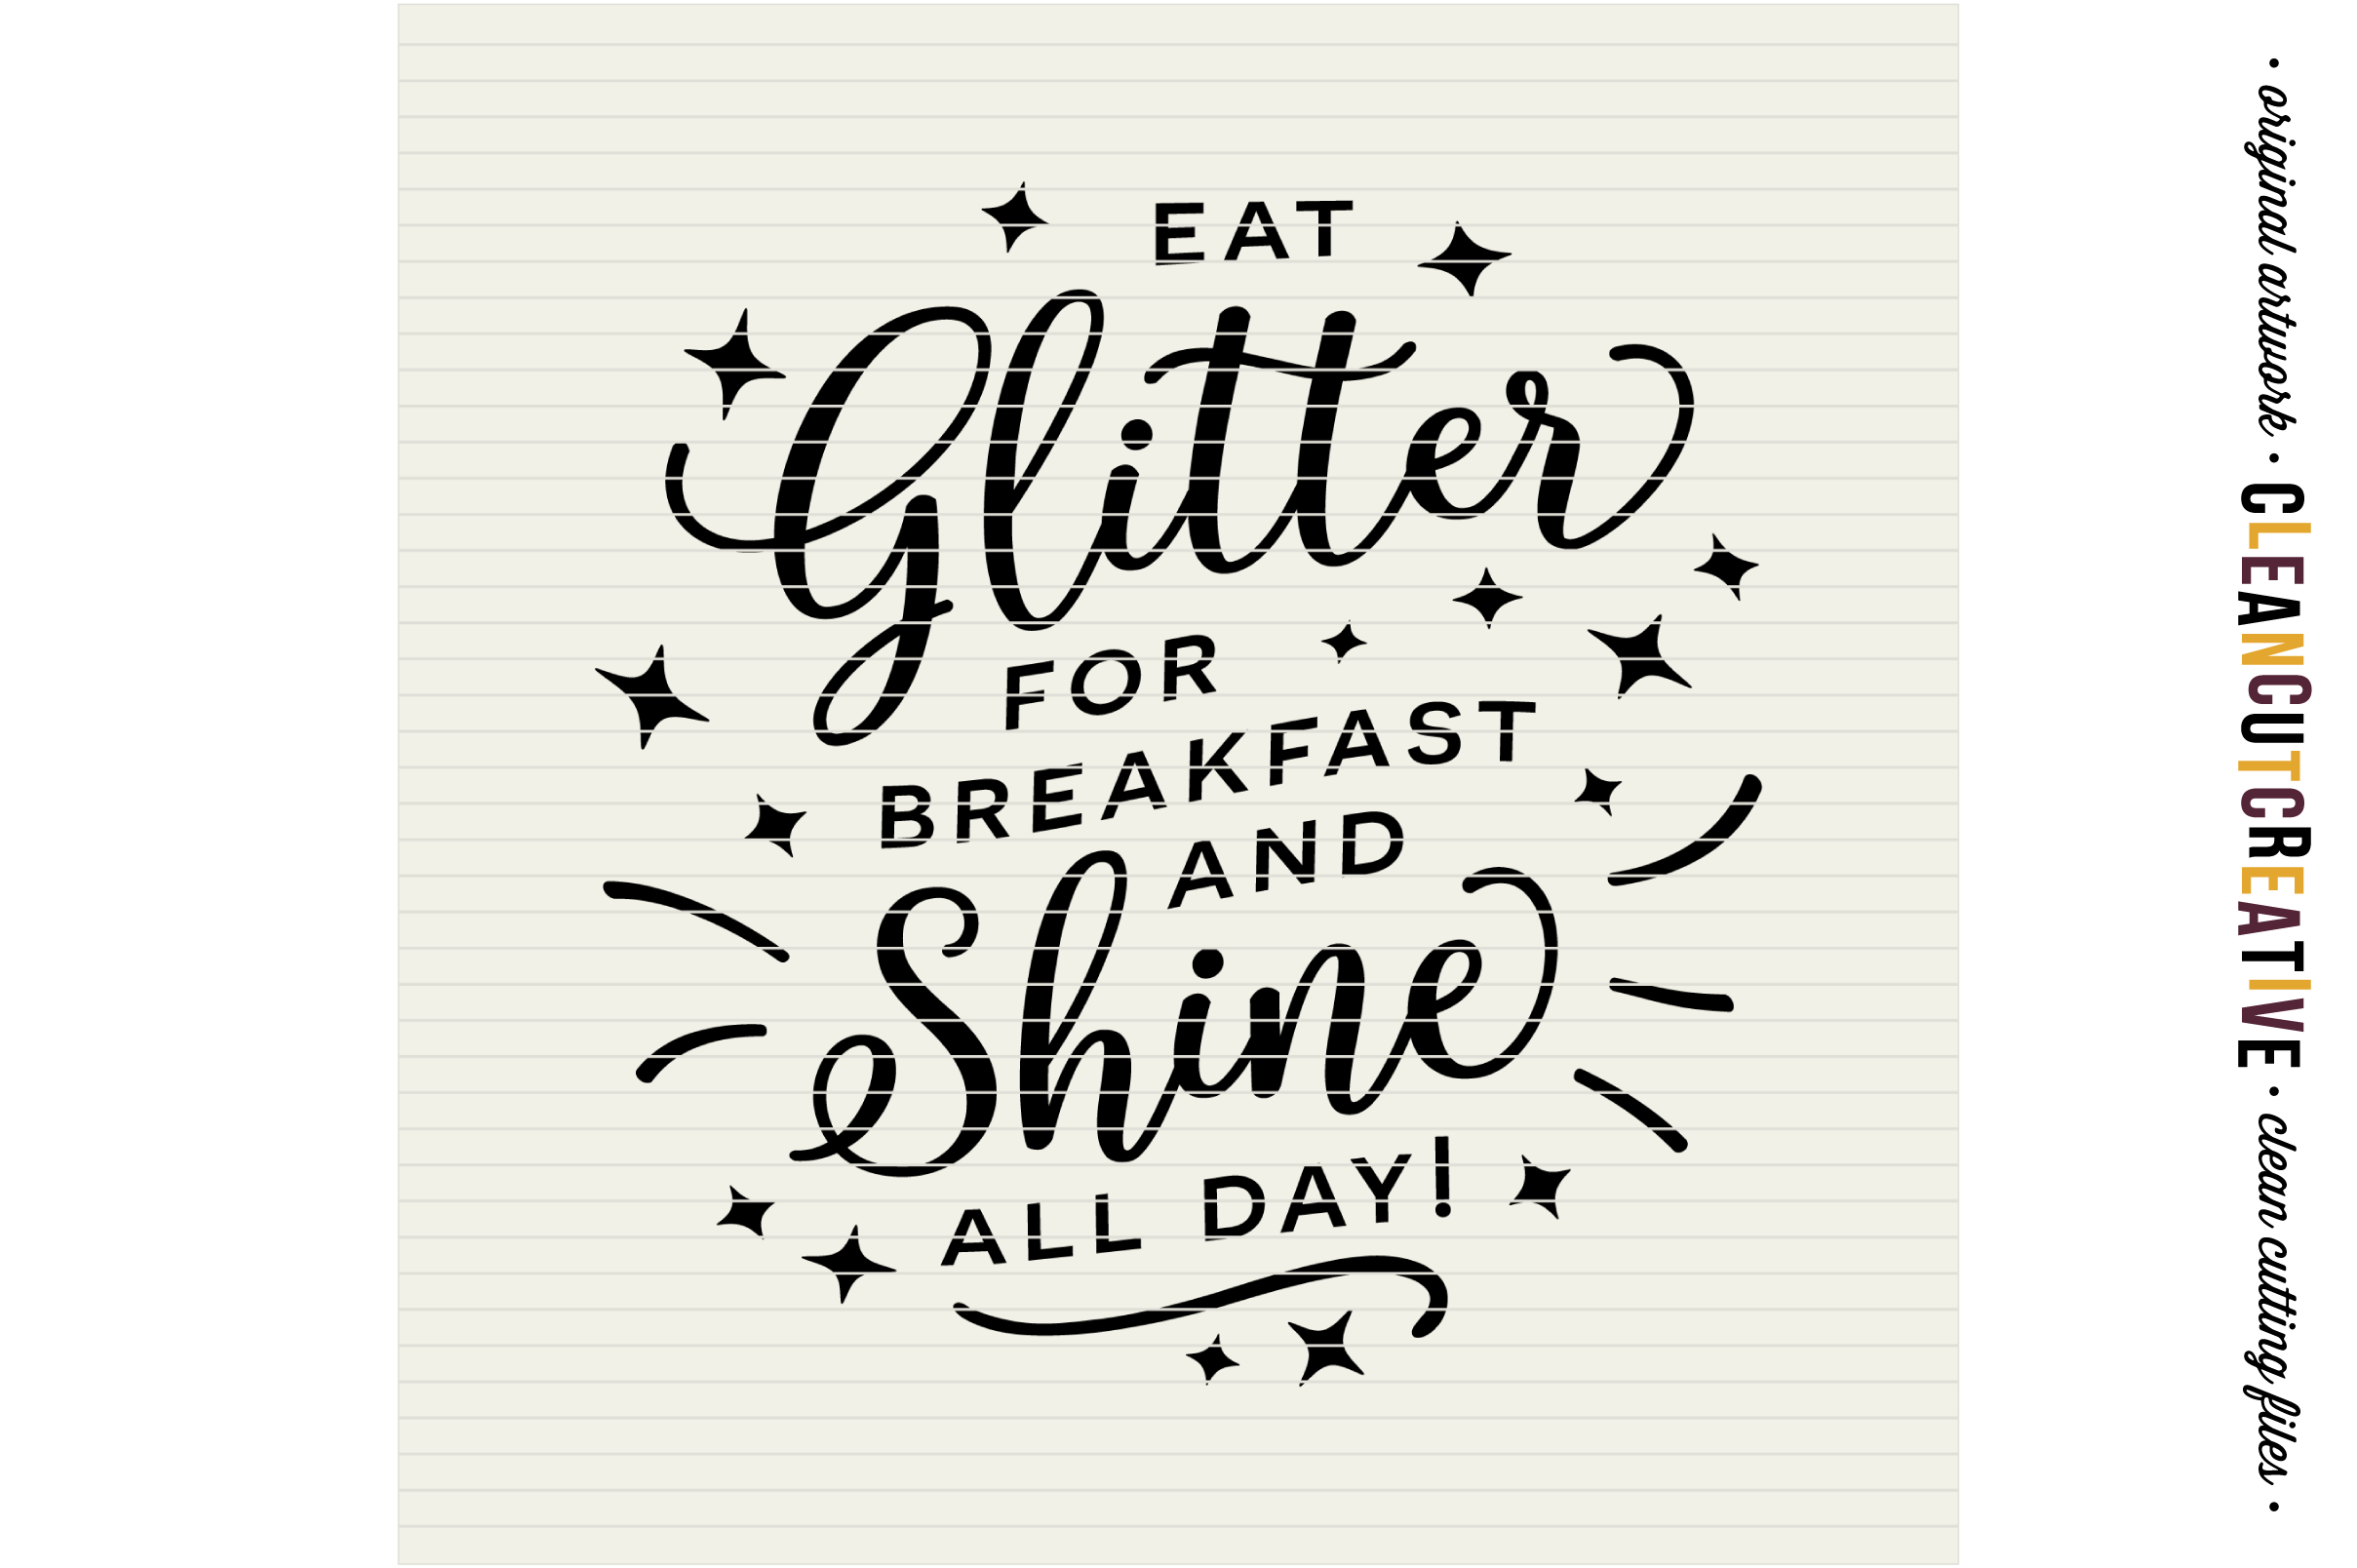 EAT GLITTER FOR BREAKFAST AND SHINE ALL DAY! - SVG cut file example image 3